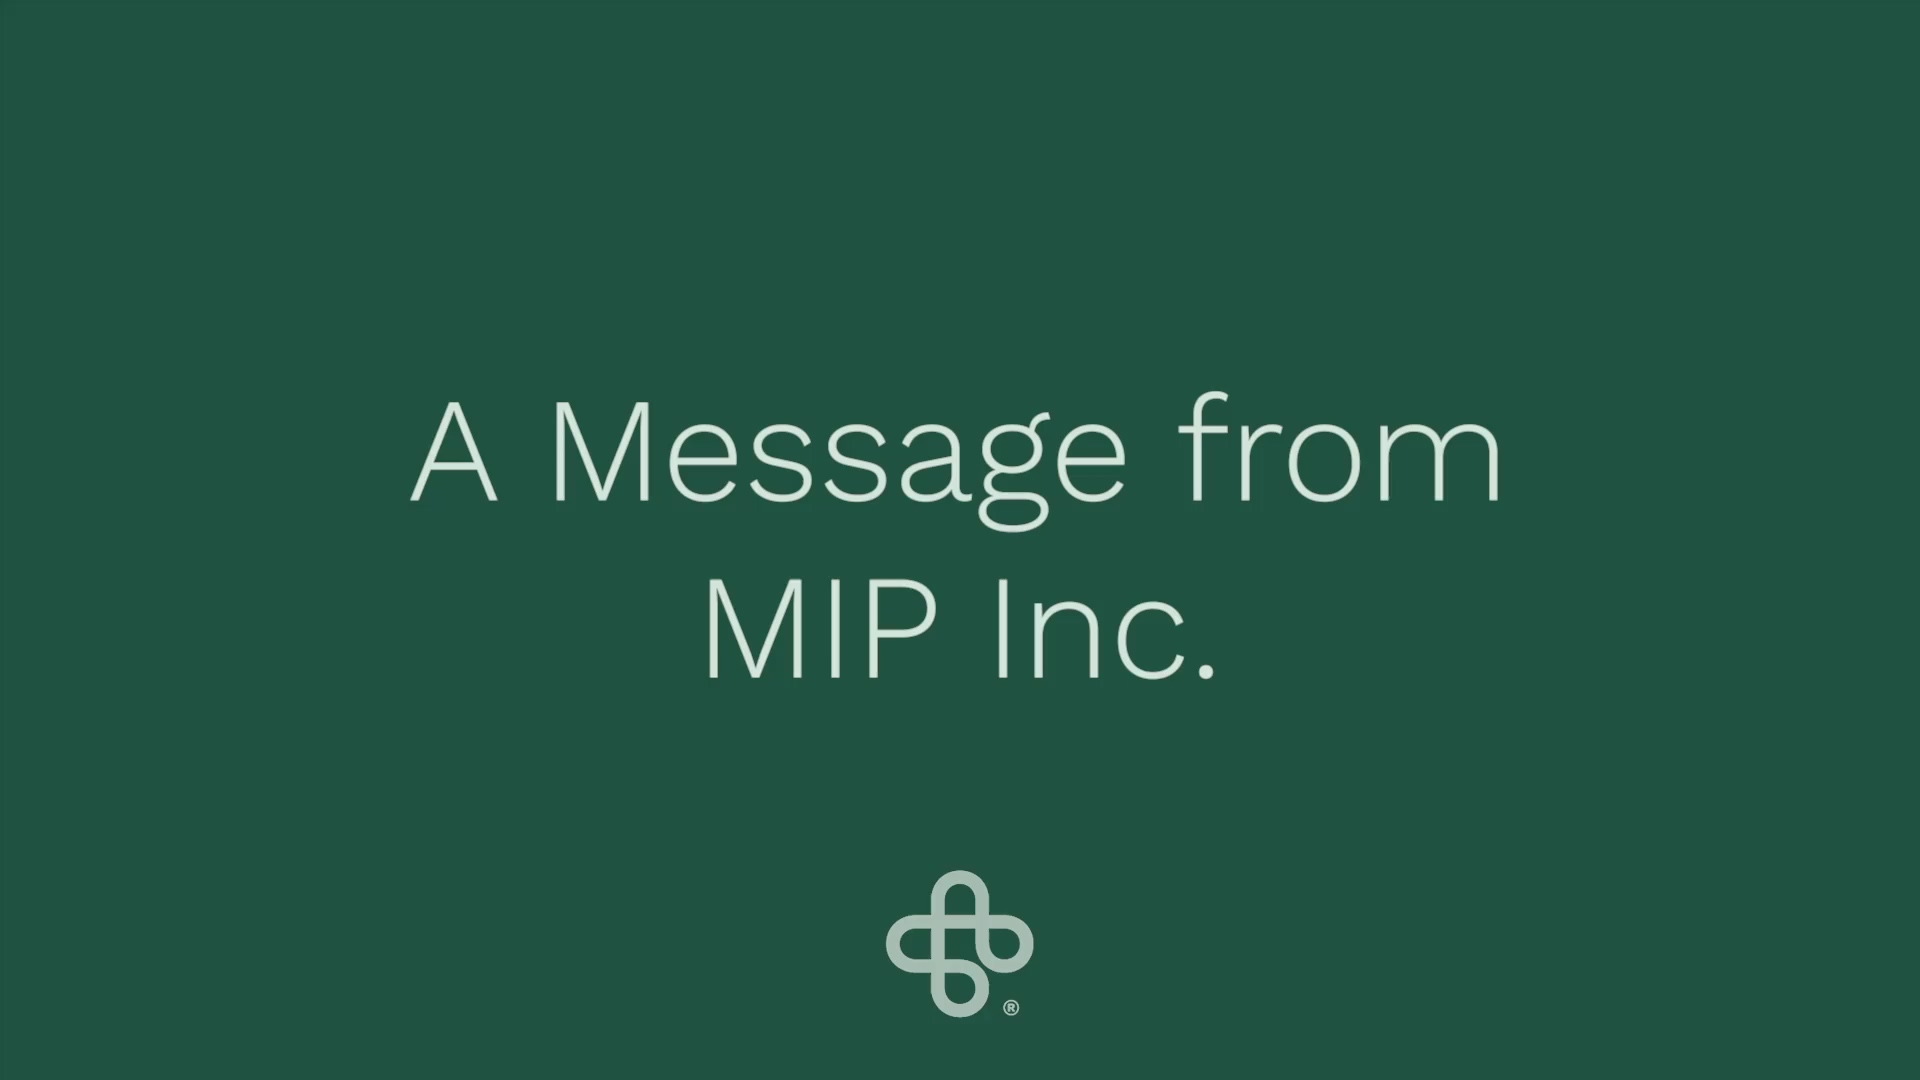 Happy Holidays from MIP Inc.